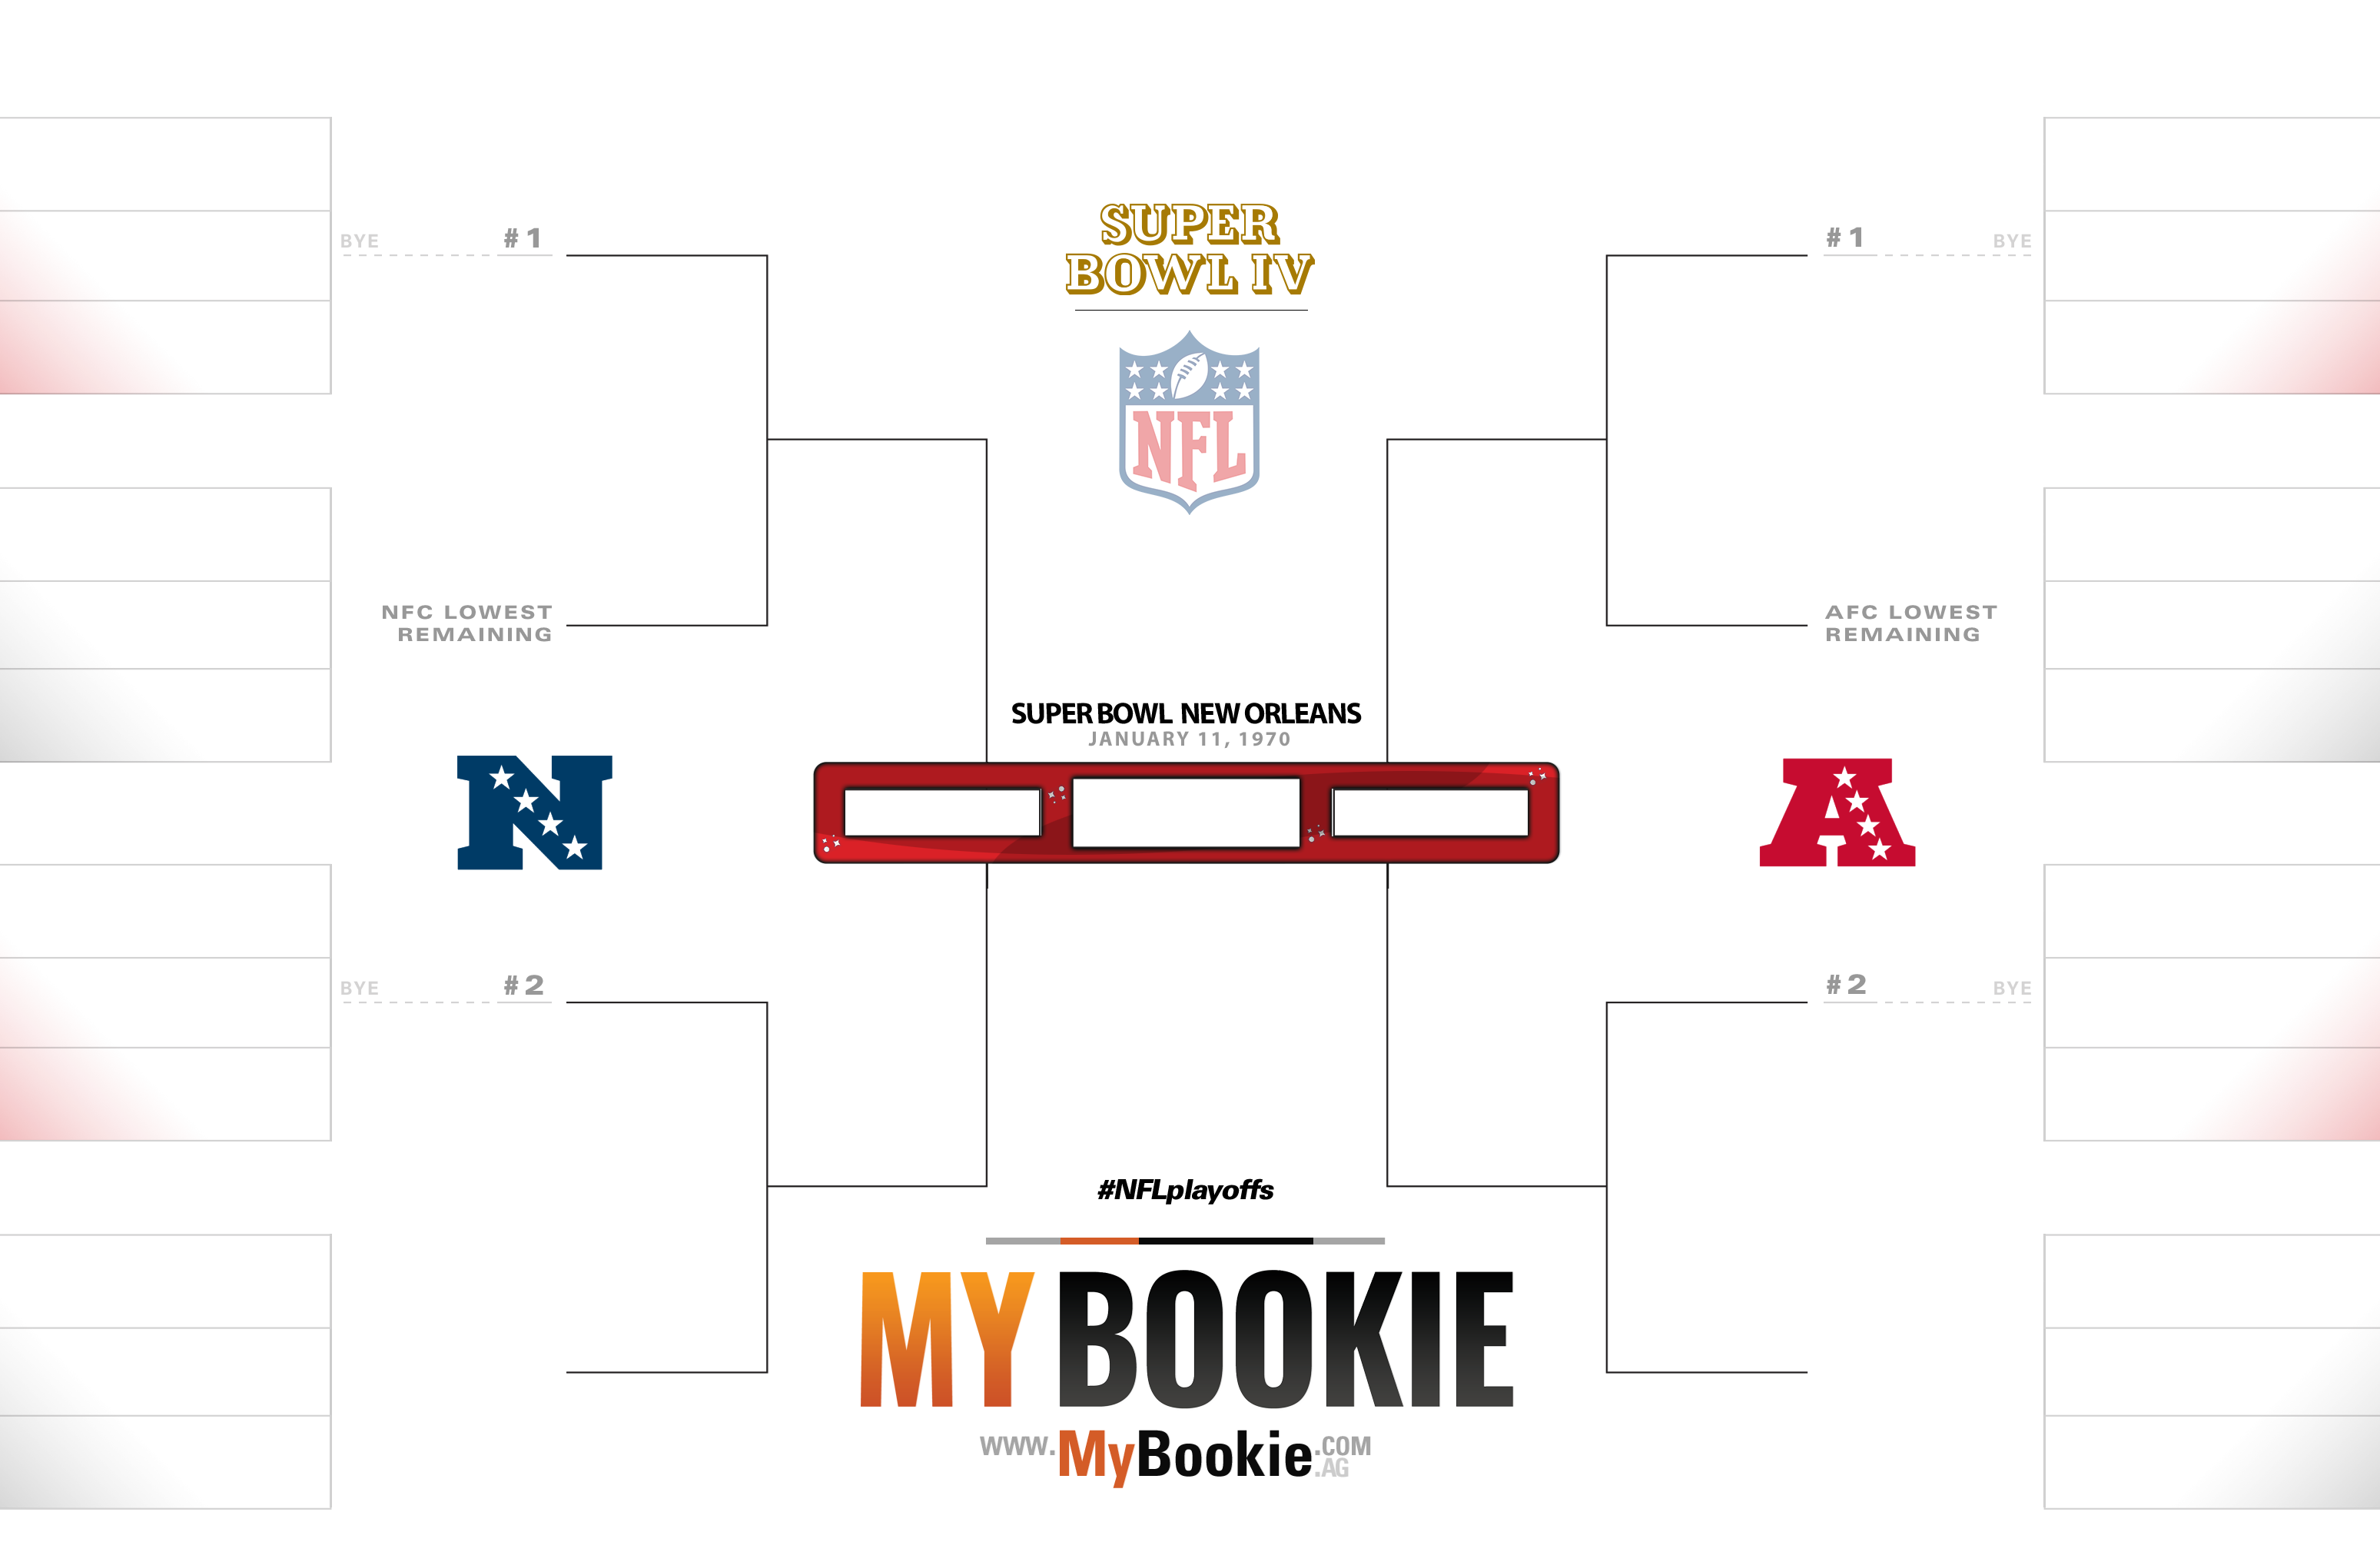 NFL Playoffs / Superbowl 1970 Printable Bracket